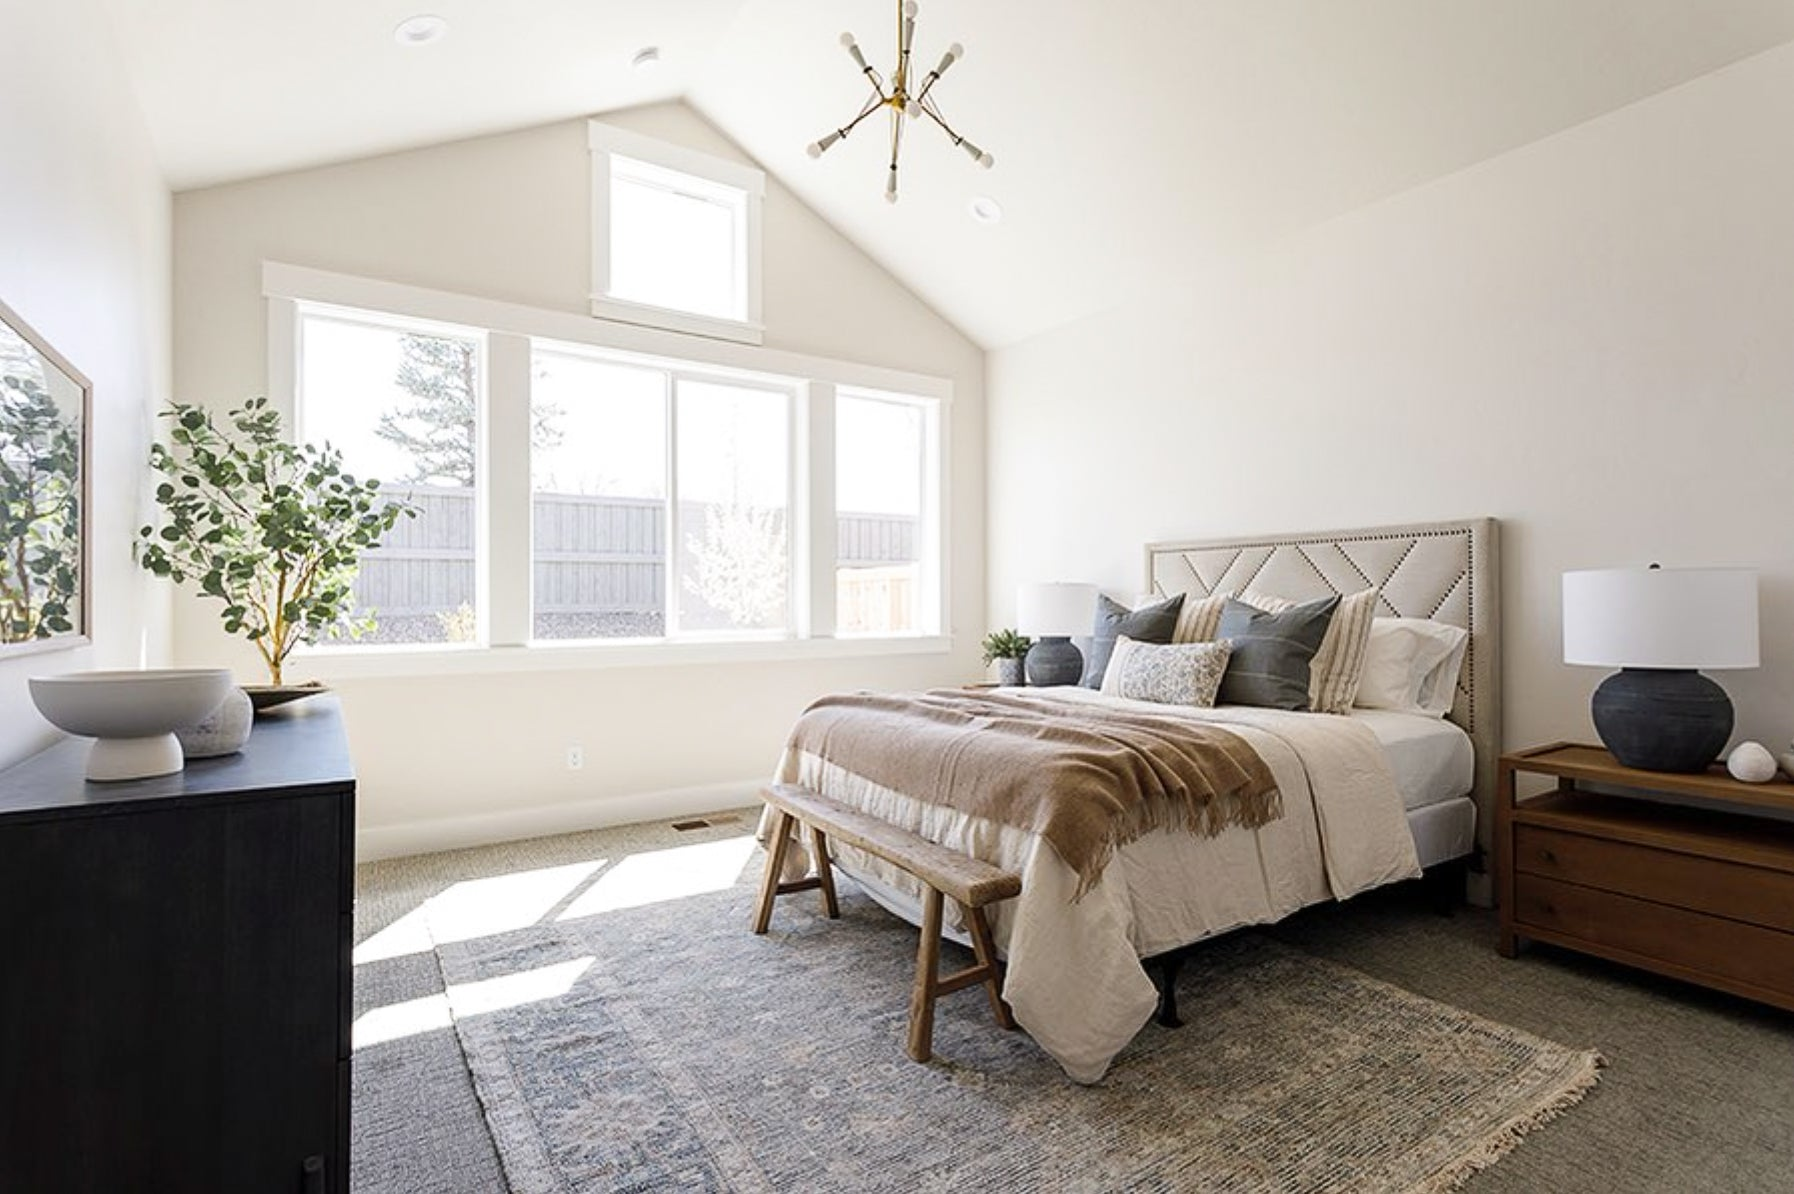 Bedroom Design, How to style your bedroom, Hackner Home, Decorative Pillows, Designer Pillows, How to style pillows on the bed, Designer Bedrooms, Modern Farmhouse Bedroom Style, Neutral Bedroom Design